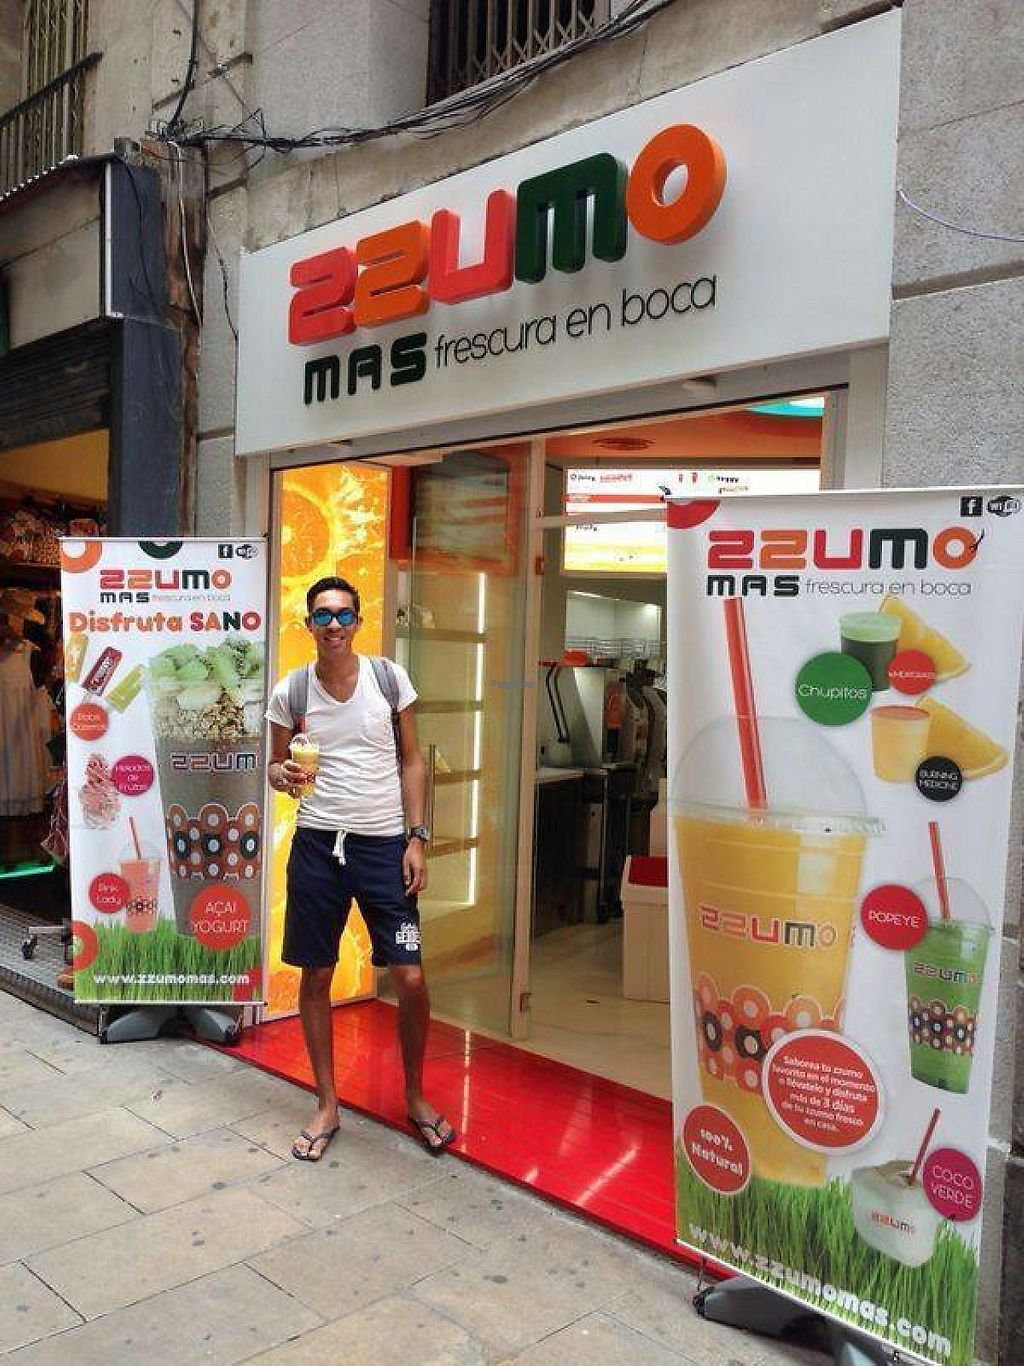 """Photo of Zzumo  by <a href=""""/members/profile/community"""">community</a> <br/>Zzumo <br/> January 31, 2017  - <a href='/contact/abuse/image/86413/220160'>Report</a>"""